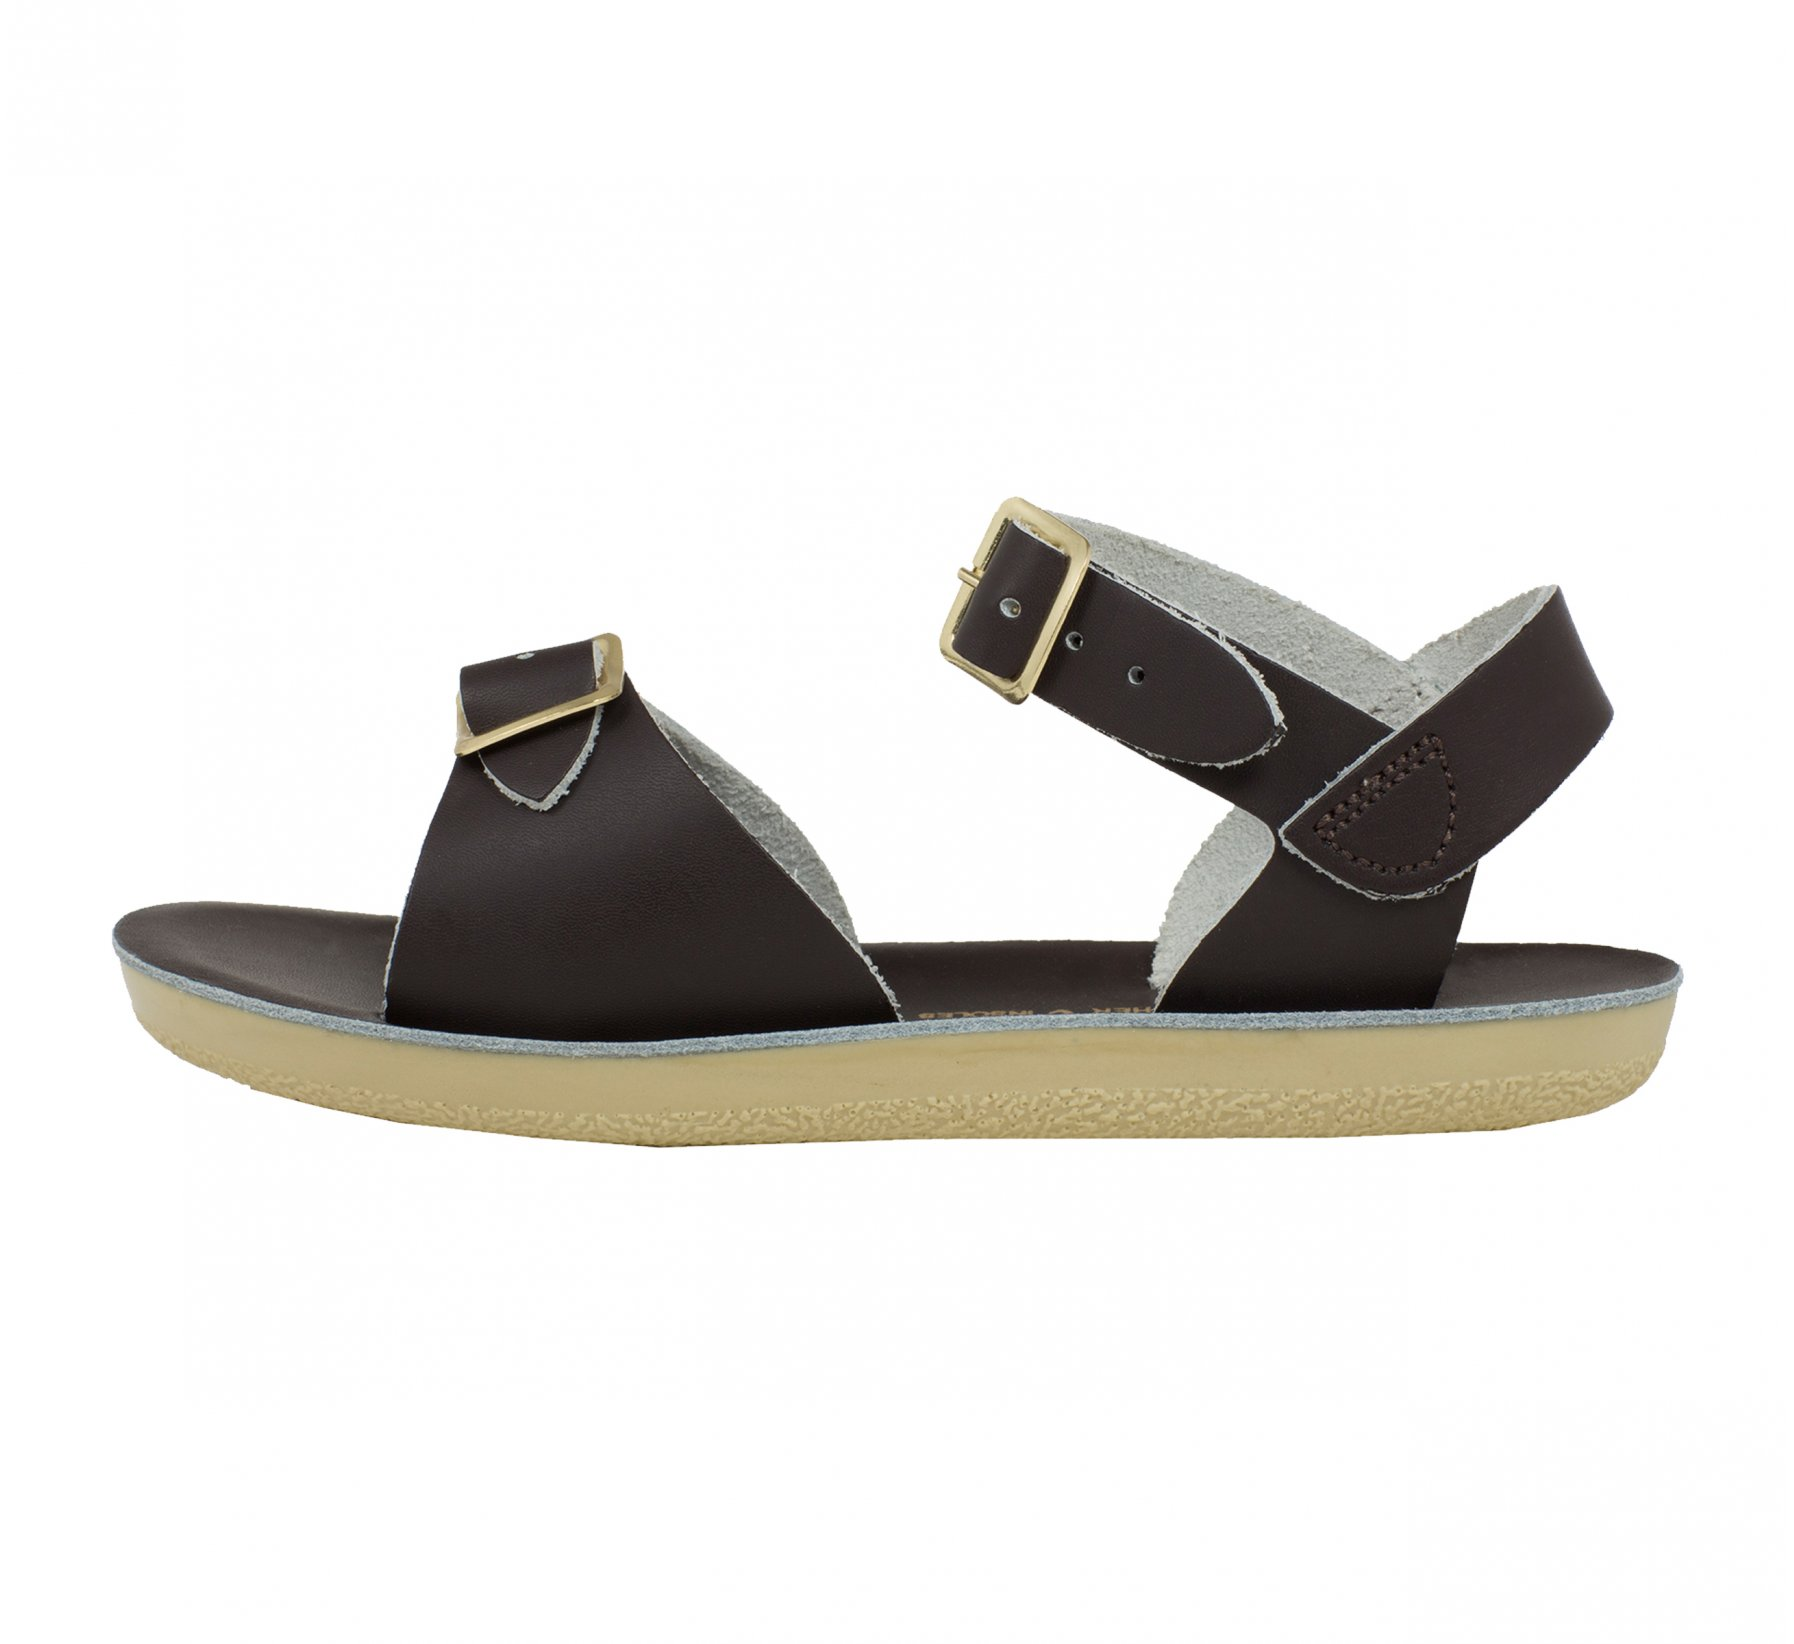 Surfer Coklat - Salt Water Sandals